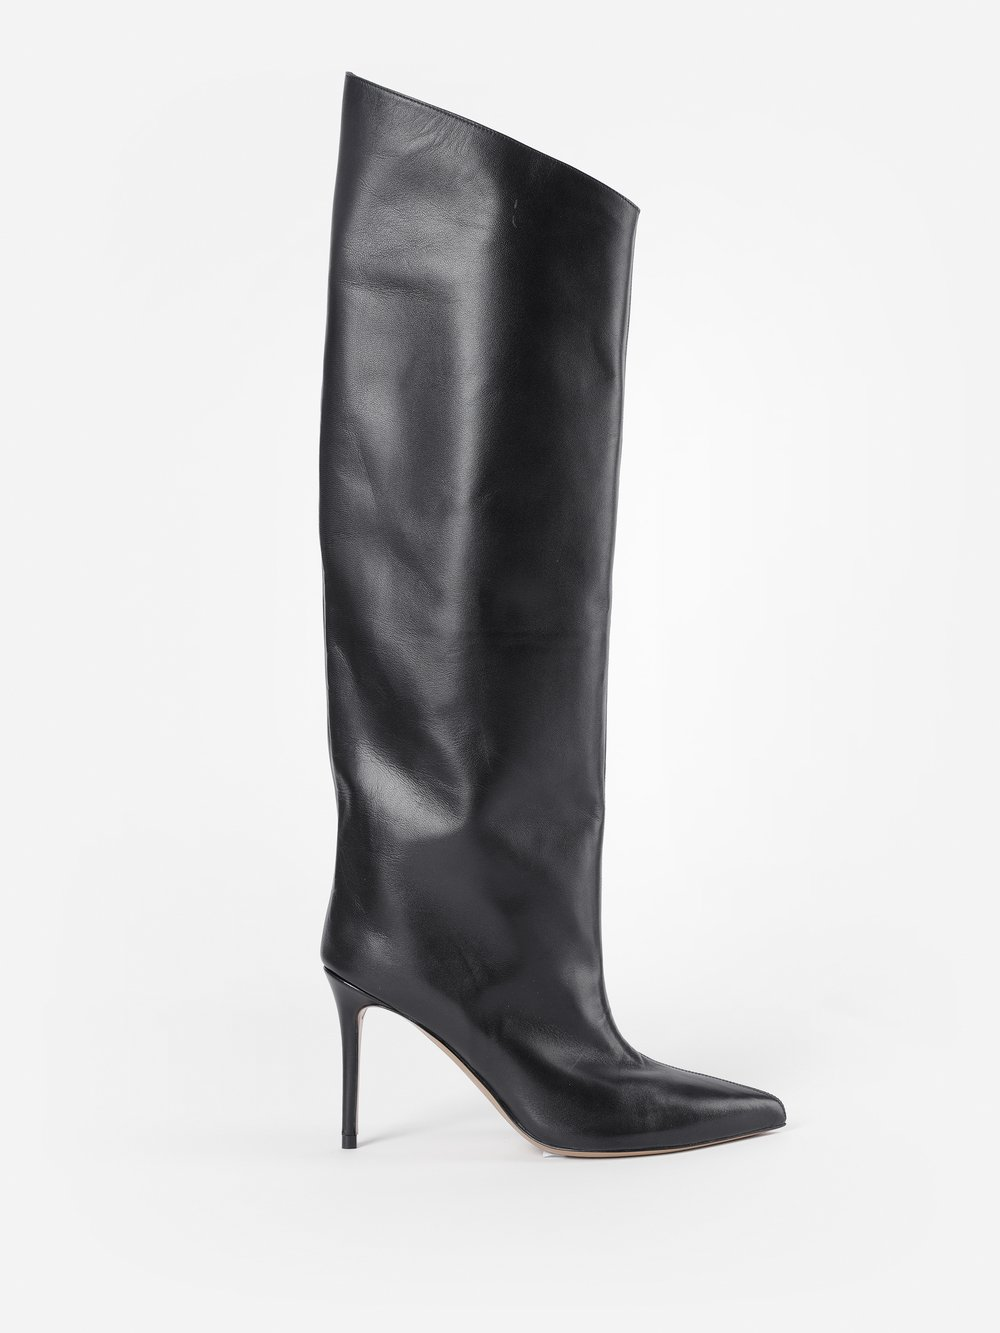 Image of Alexandre Vauthier Boots